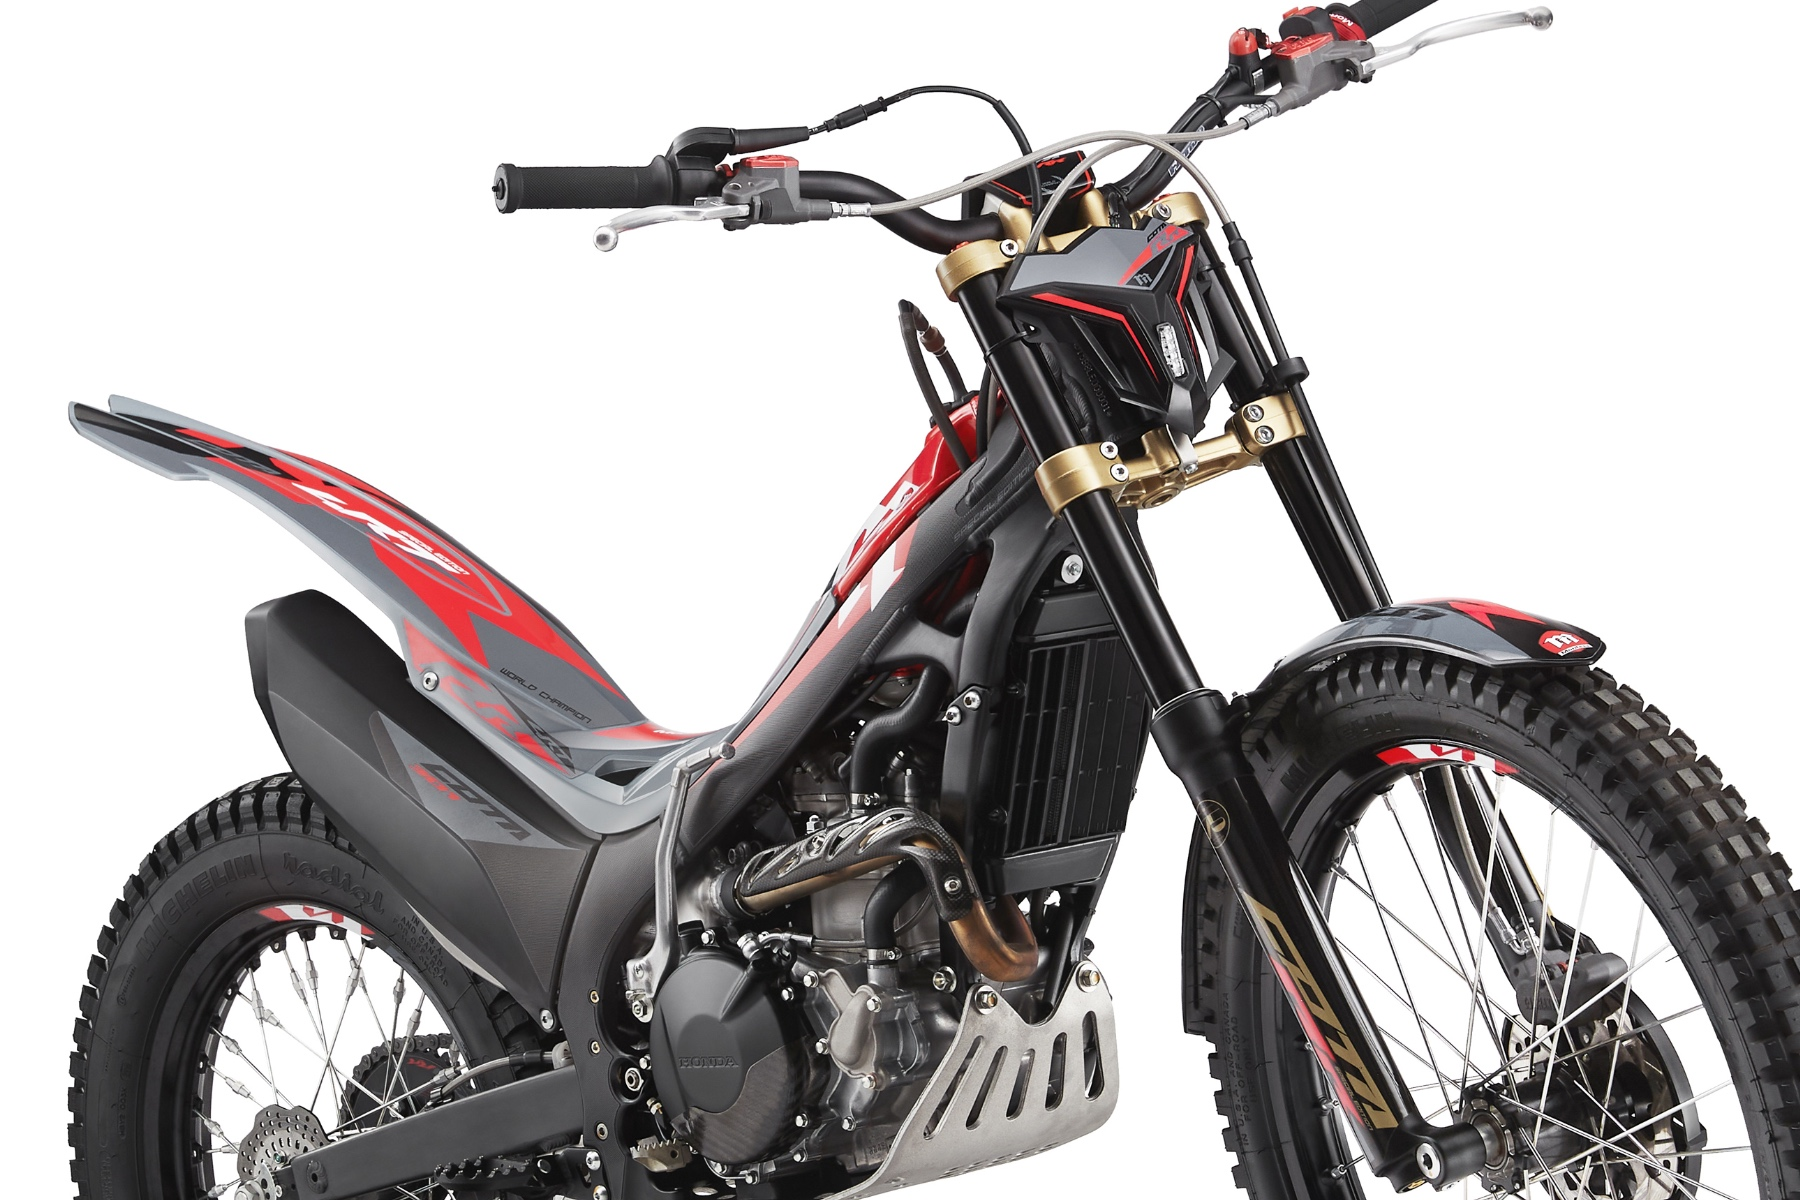 https://www.montesa.com/wp-content/uploads/2020/08/Montesa_Cota_301RT_YM2021_M0004_AH_r.jpg